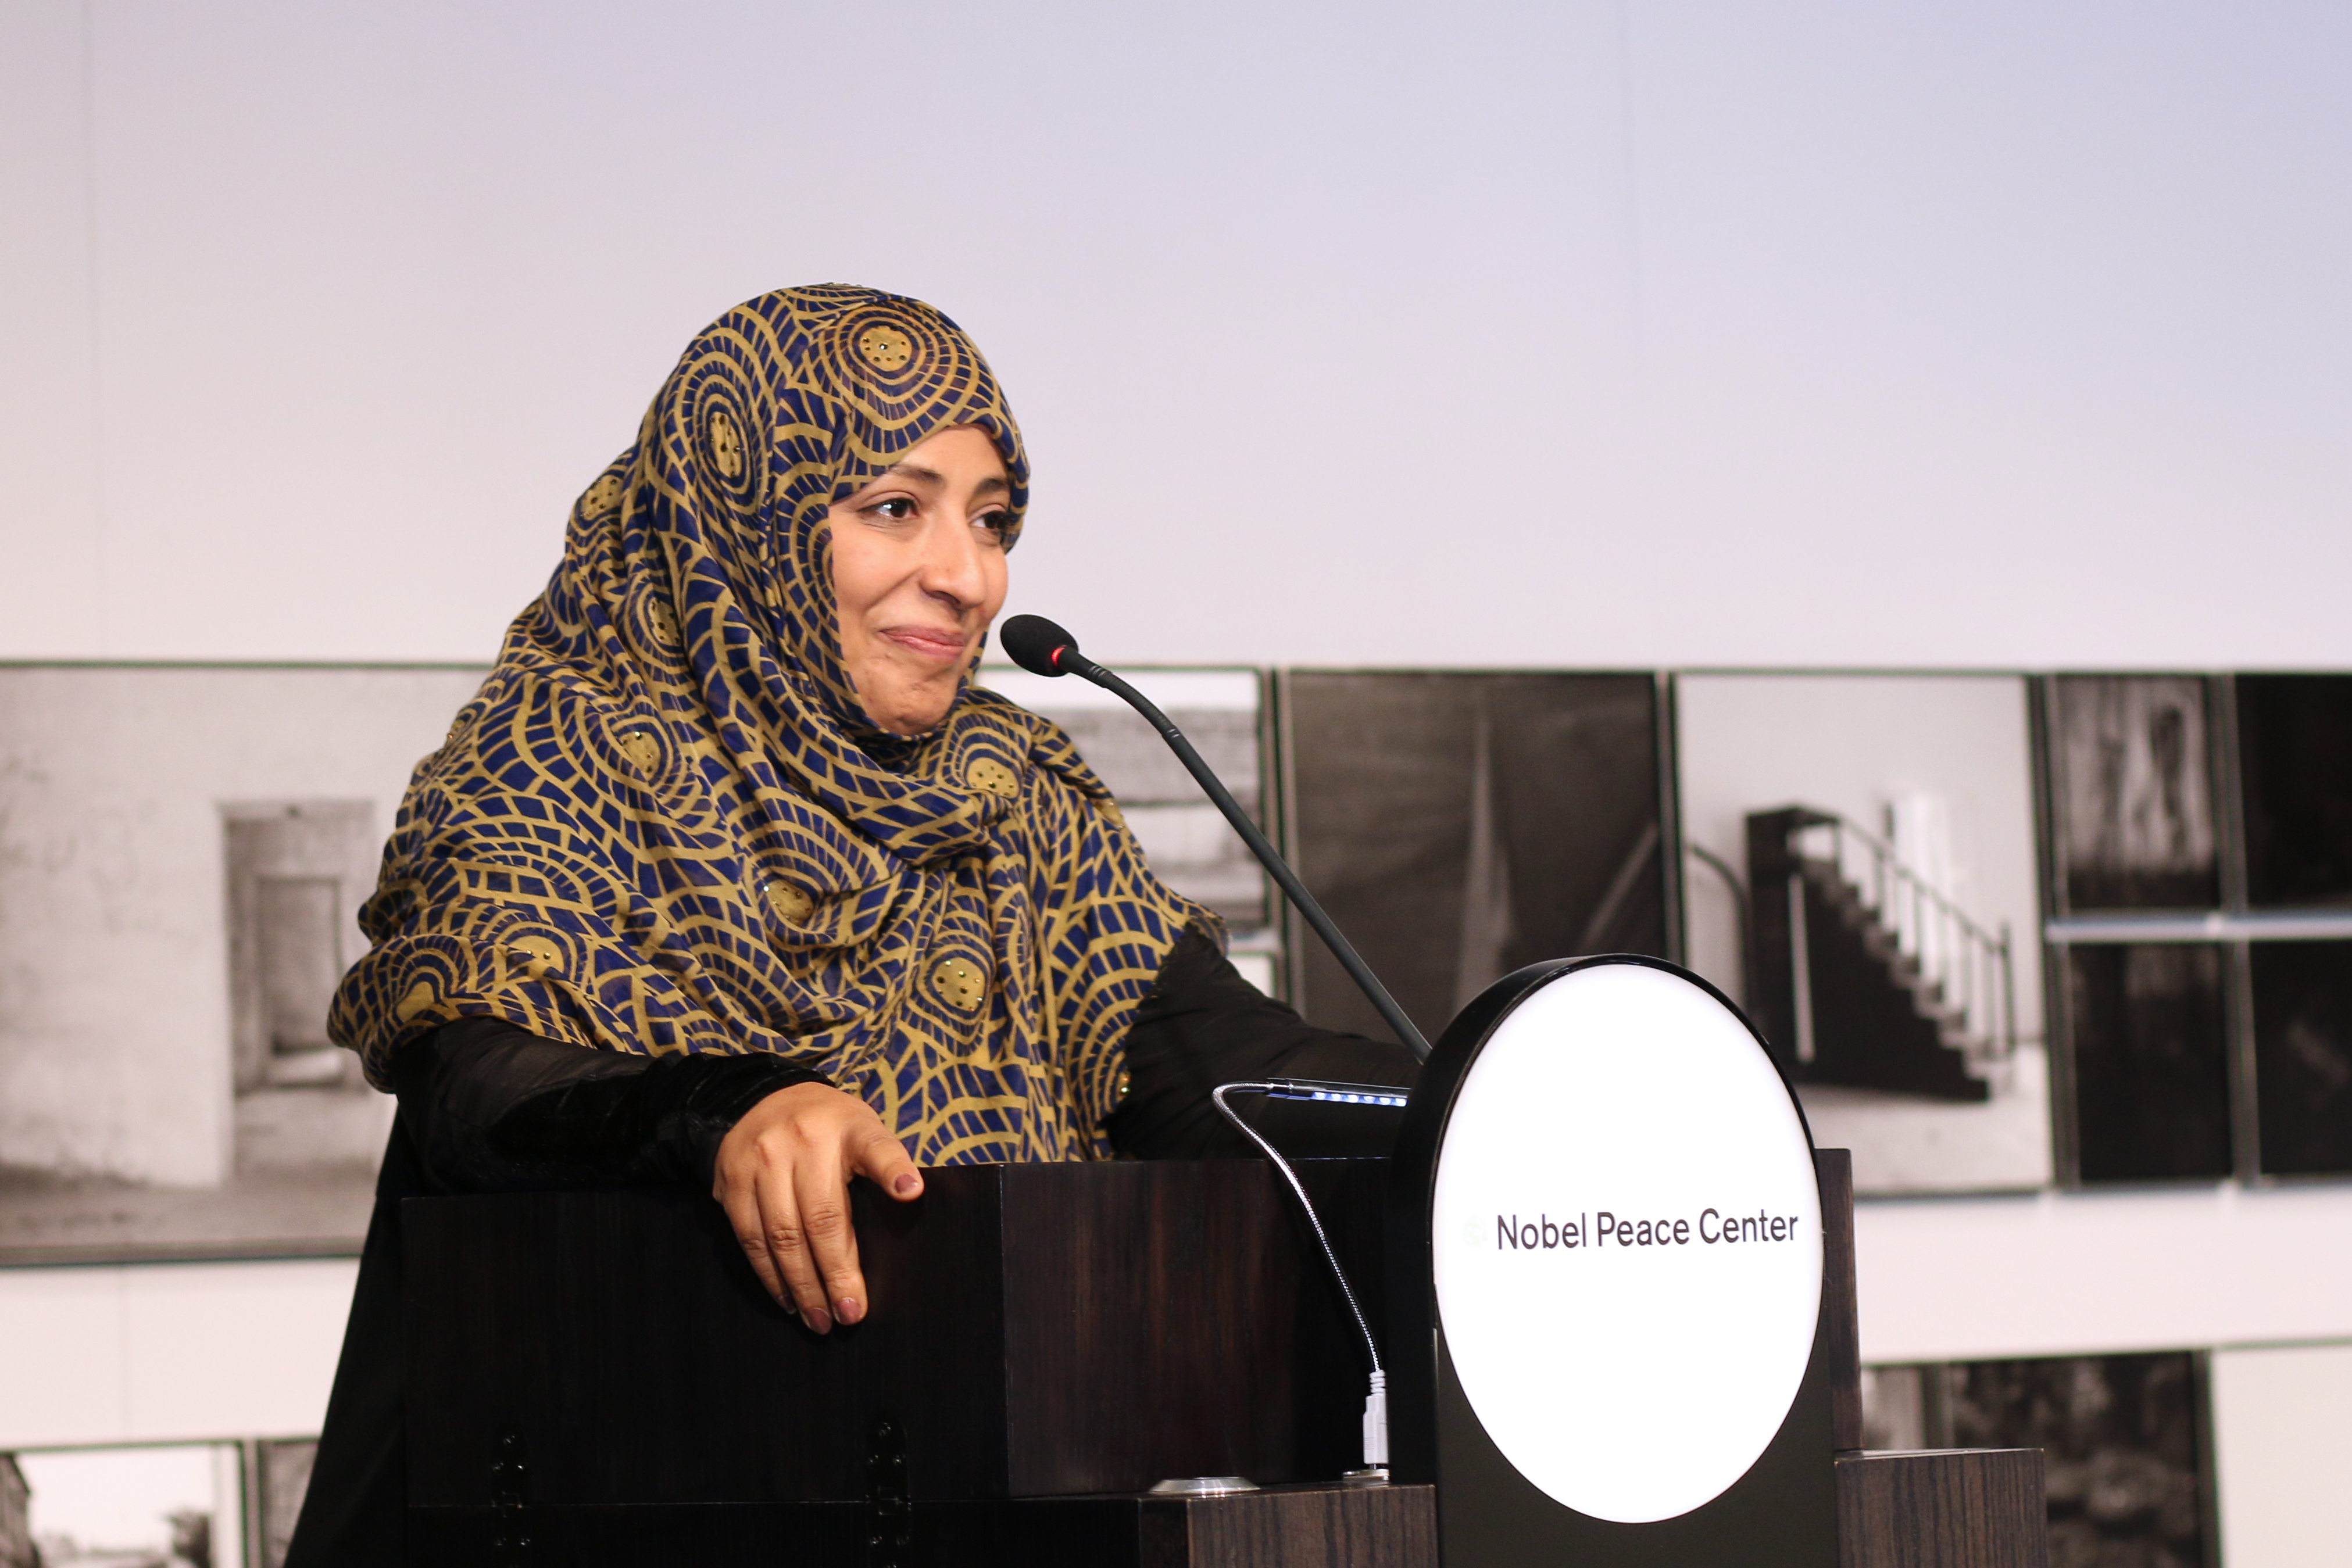 Tawakkol Karman, Nobel Peace Laureate 2011, at the presentation of Peter Badge's 'Nobel Heroes' at the Nobel Peace Center in Oslo